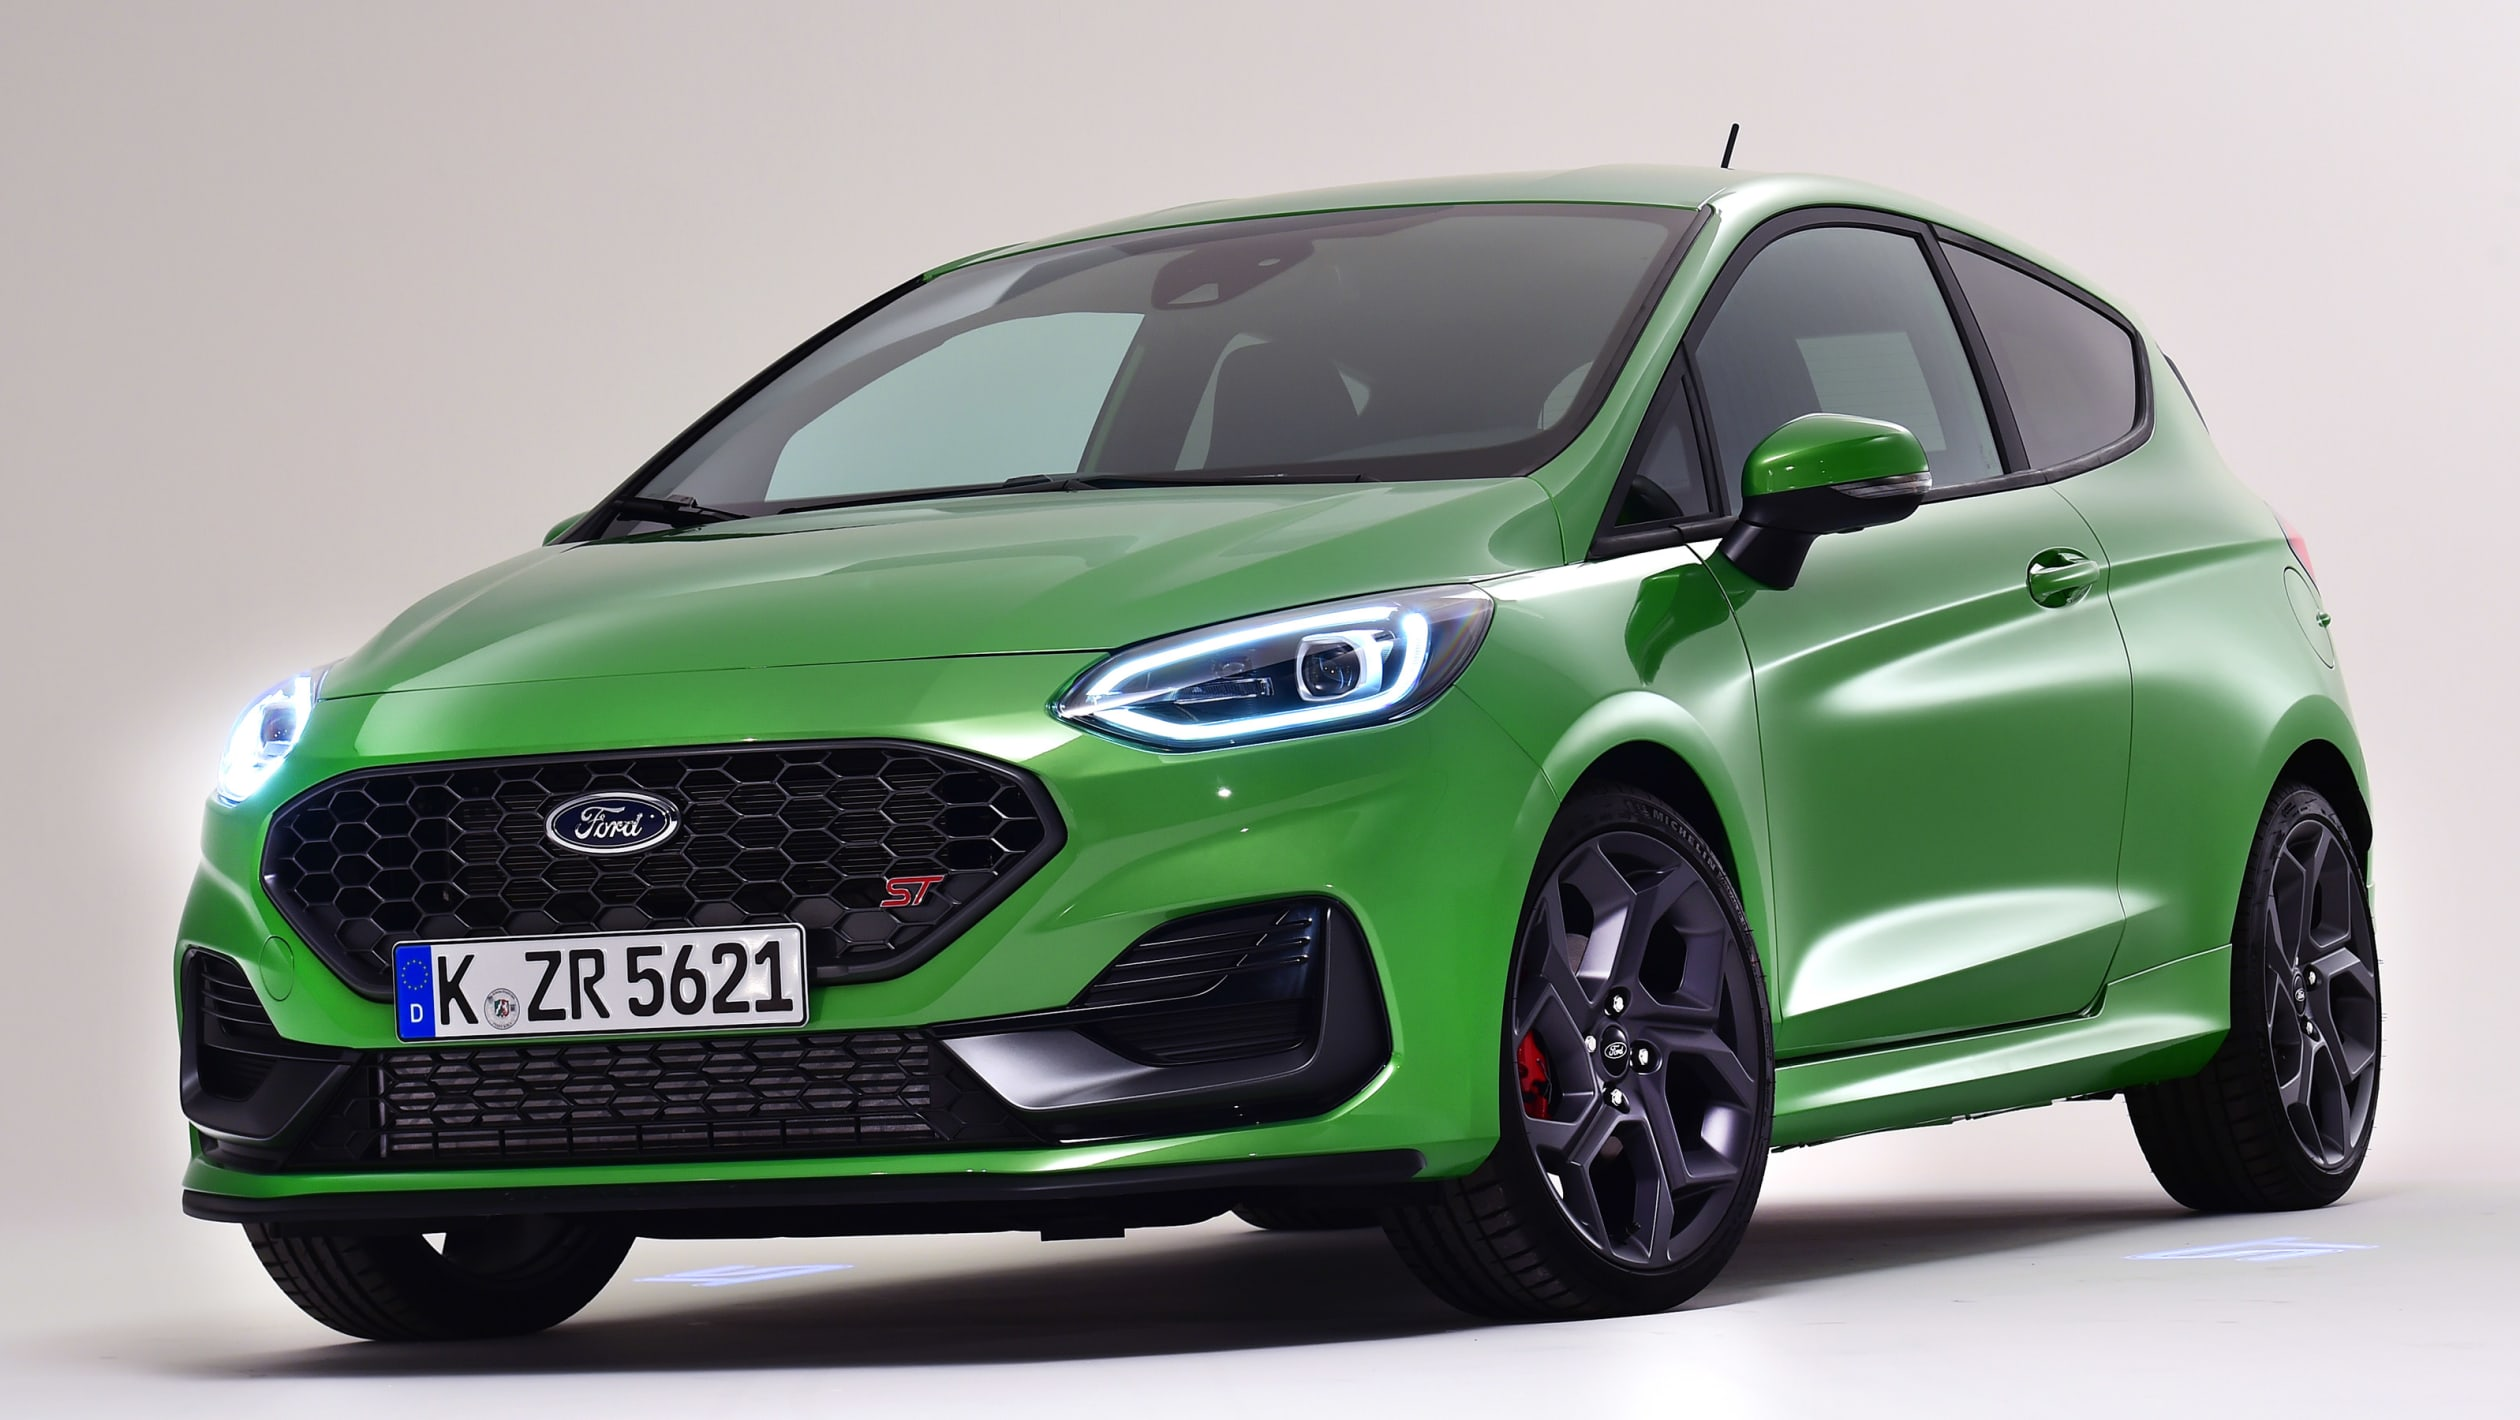 After four years of production, Ford Motor Company has modernized the seventh generation of the Fiesta hatchback for Europe.